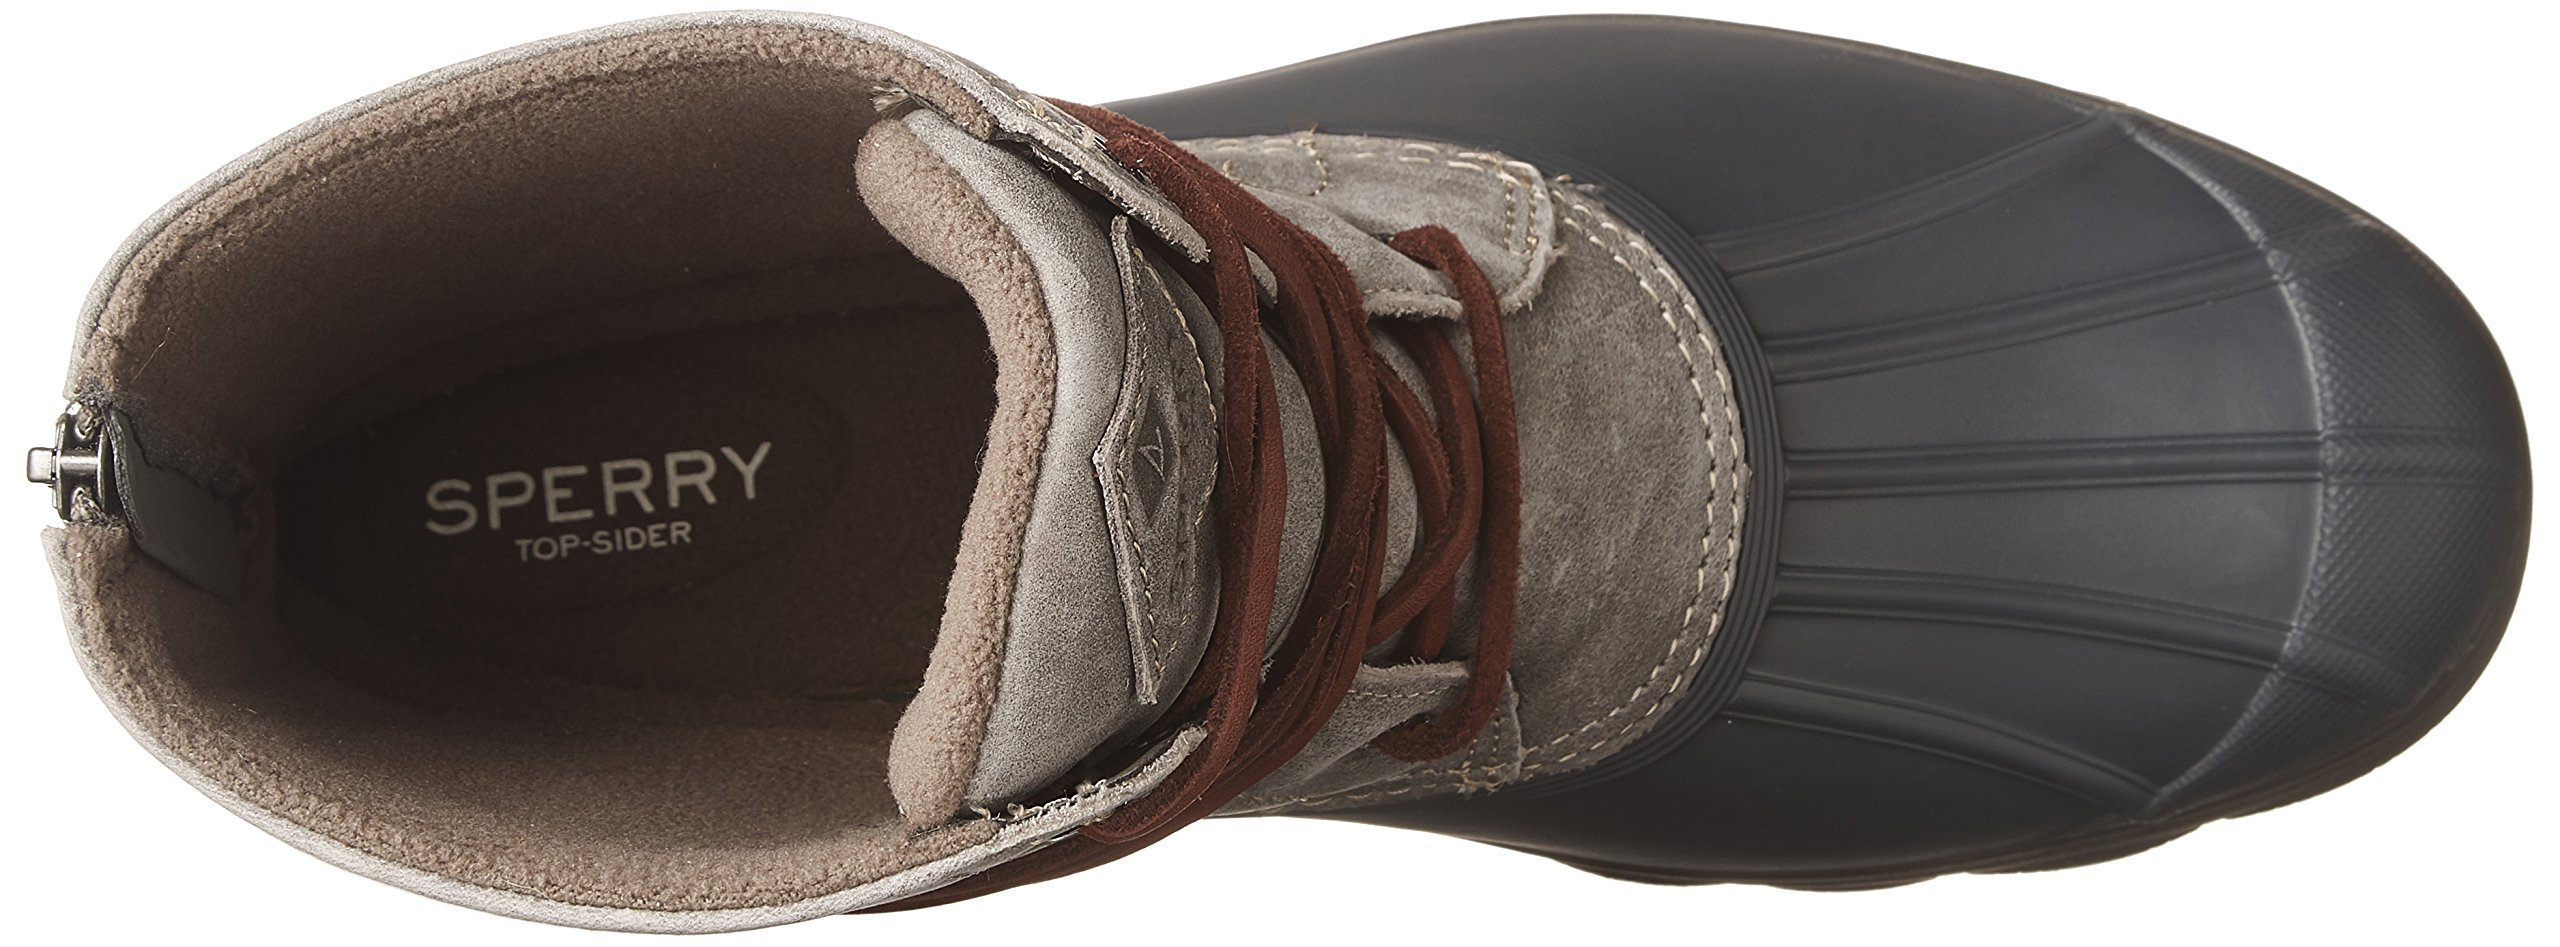 Sperry Top-Sider Women's Saltwater Wedge Tide Rain Boot, Grey, 8 Medium US by Sperry Top-Sider (Image #8)